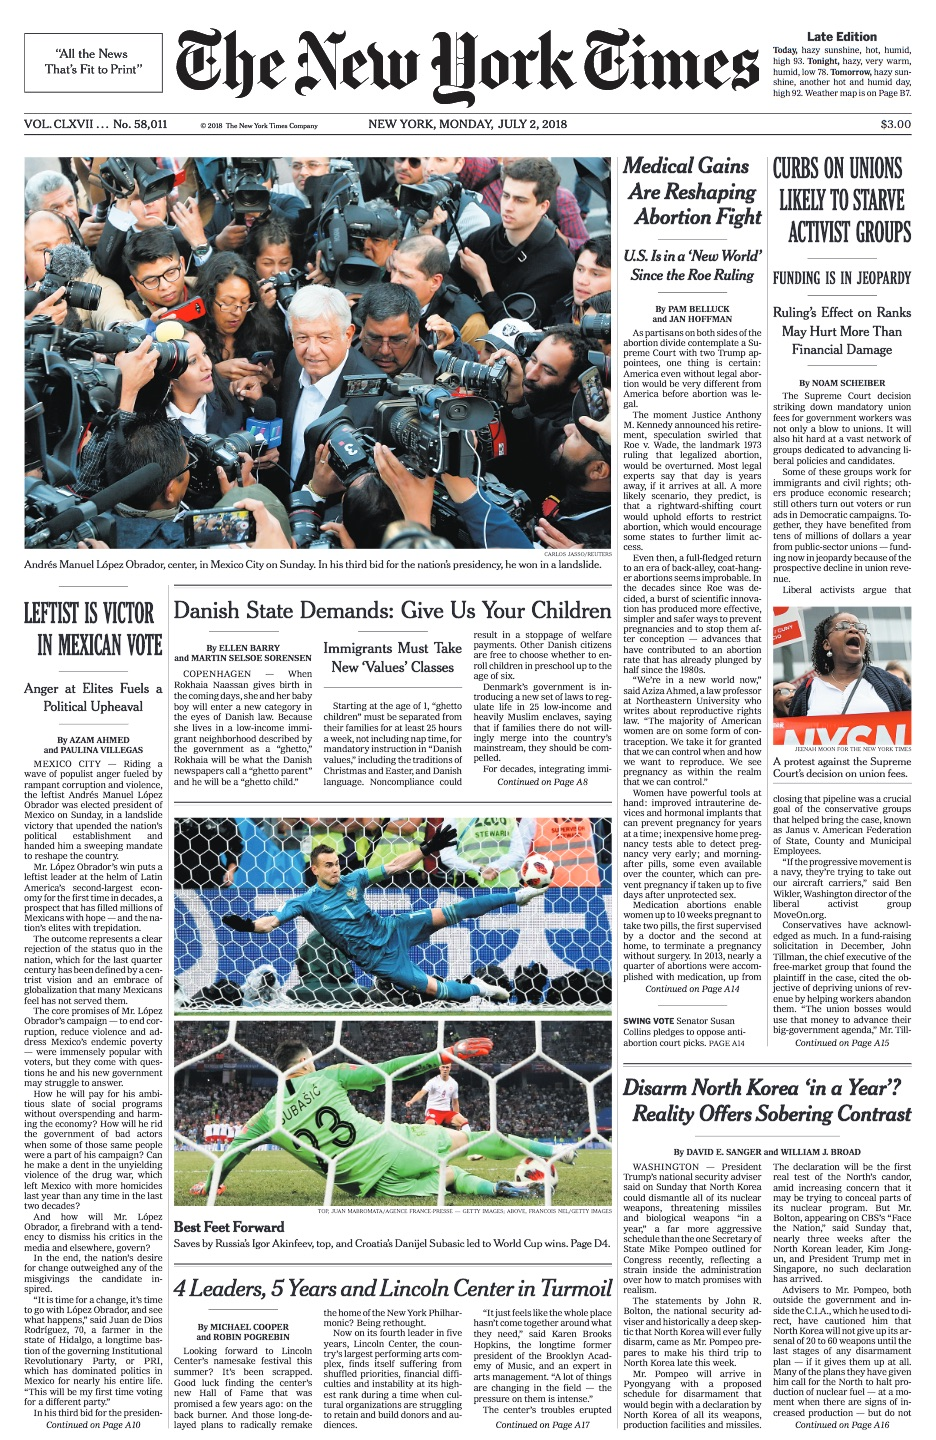 NYT_FrontPage_070218.jpg